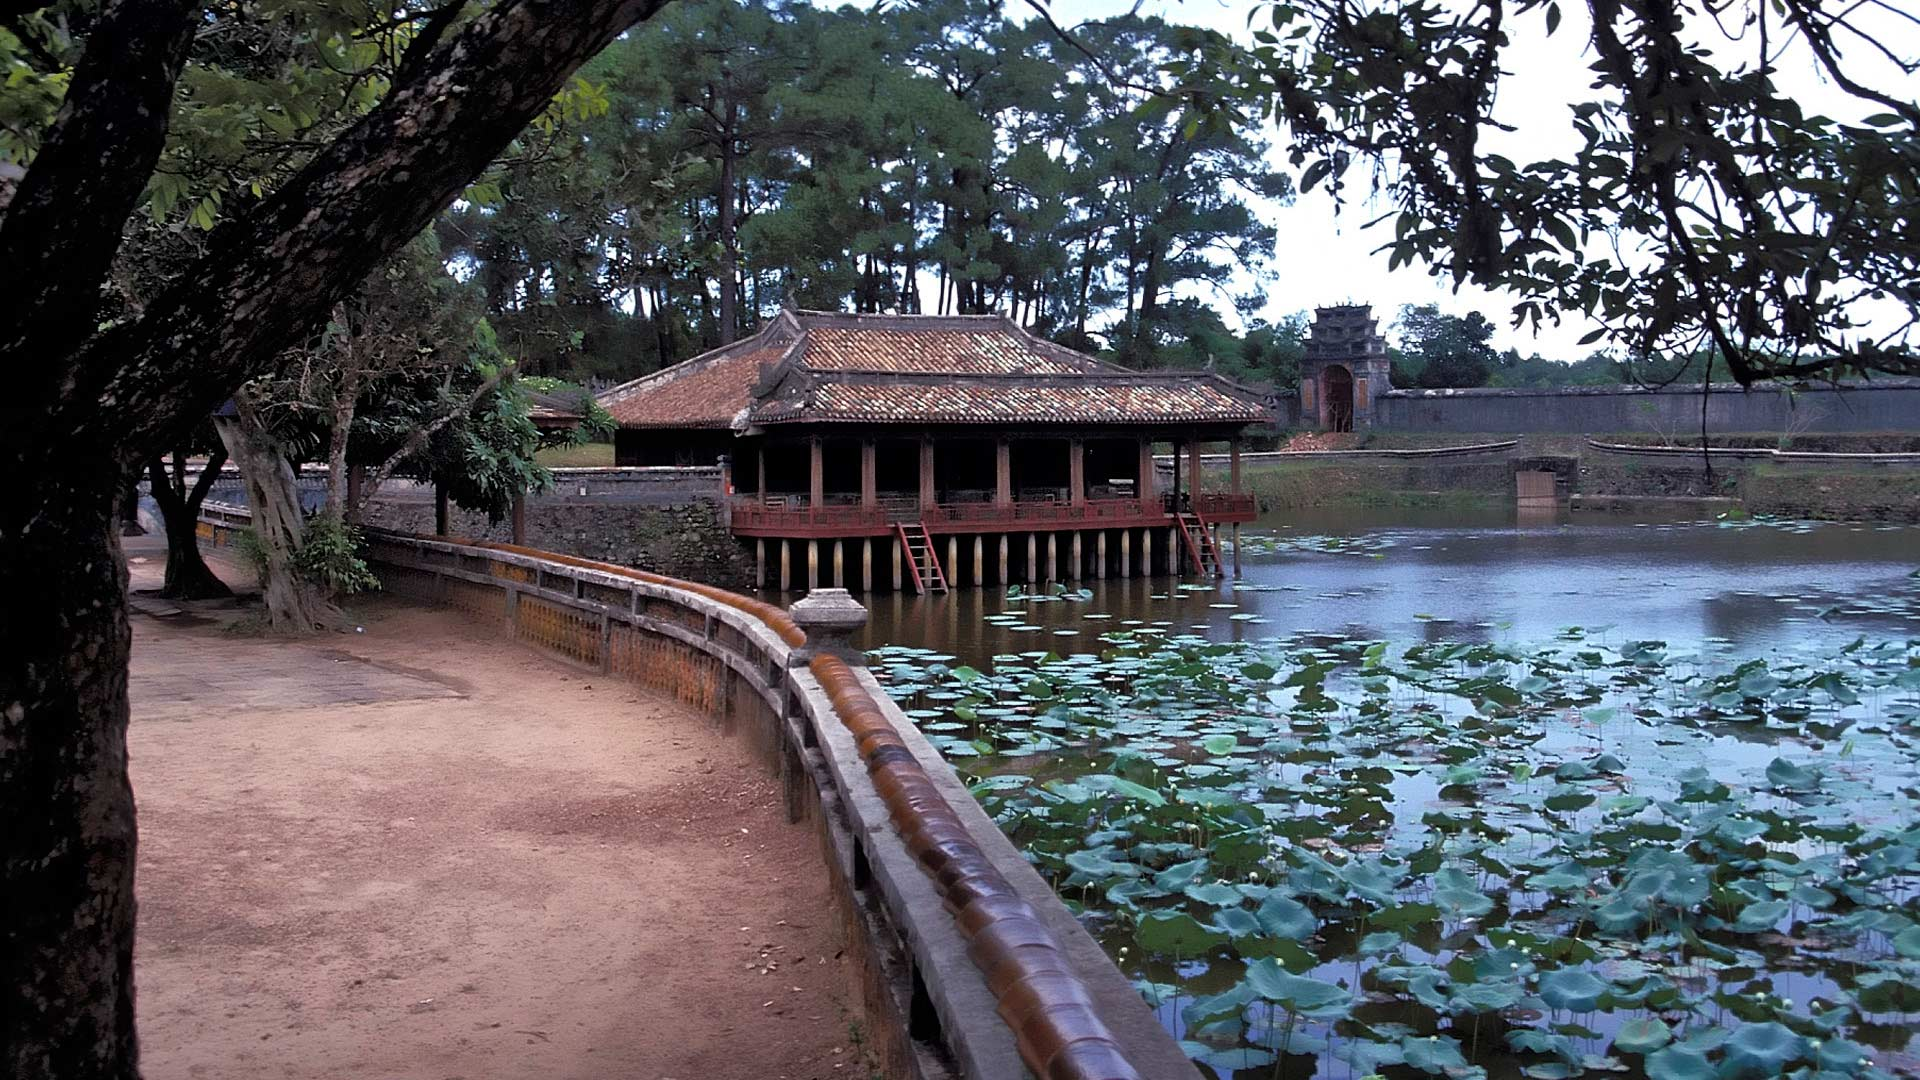 Xung Khiem Pavilion on Luu Khiem Lake located by Tu Duc's Tomb, Hue, Thua Thien-Hue, Vietnam